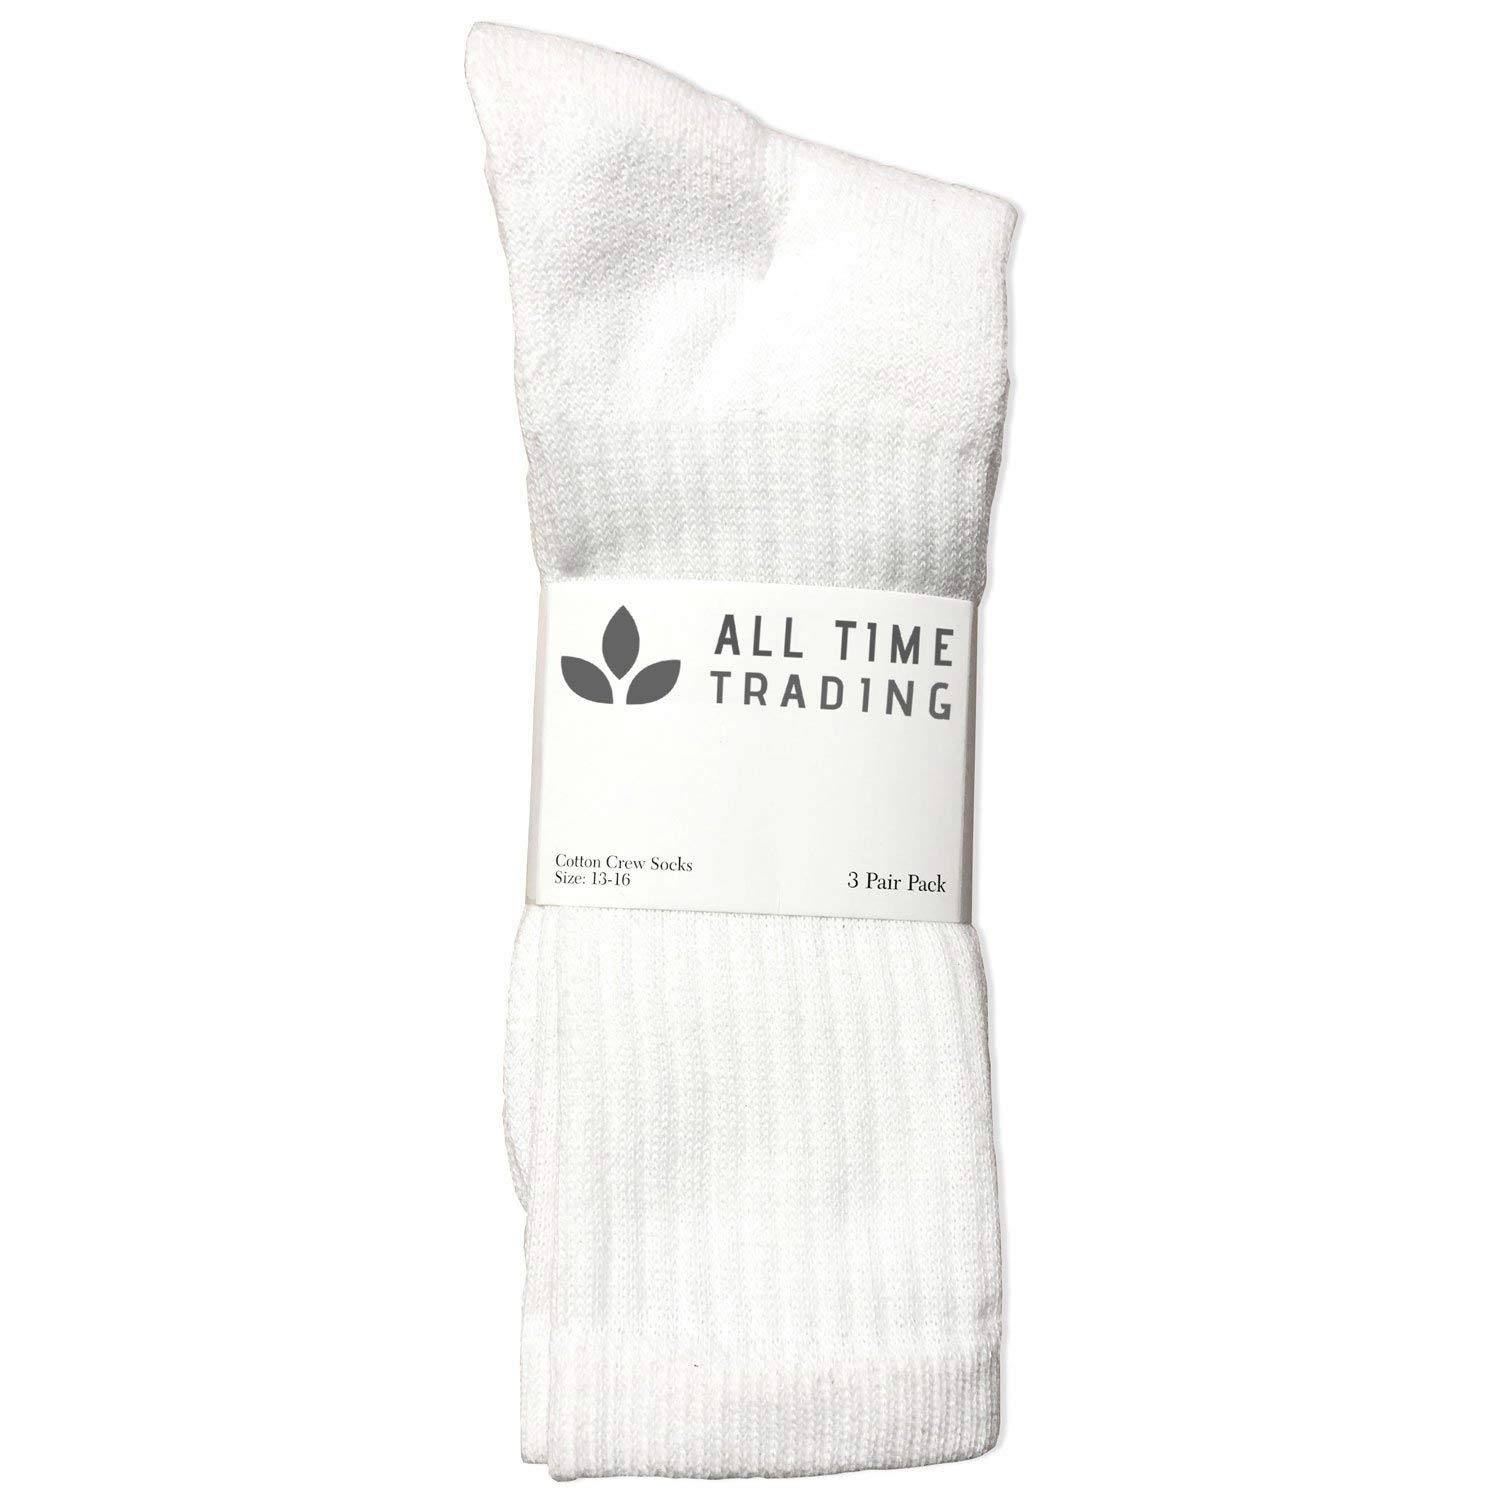 Men's King Size Cotton Crew Sock Plus Size Athletic Socks Men 13-16 White 72 pc by All Time Trading (Image #2)